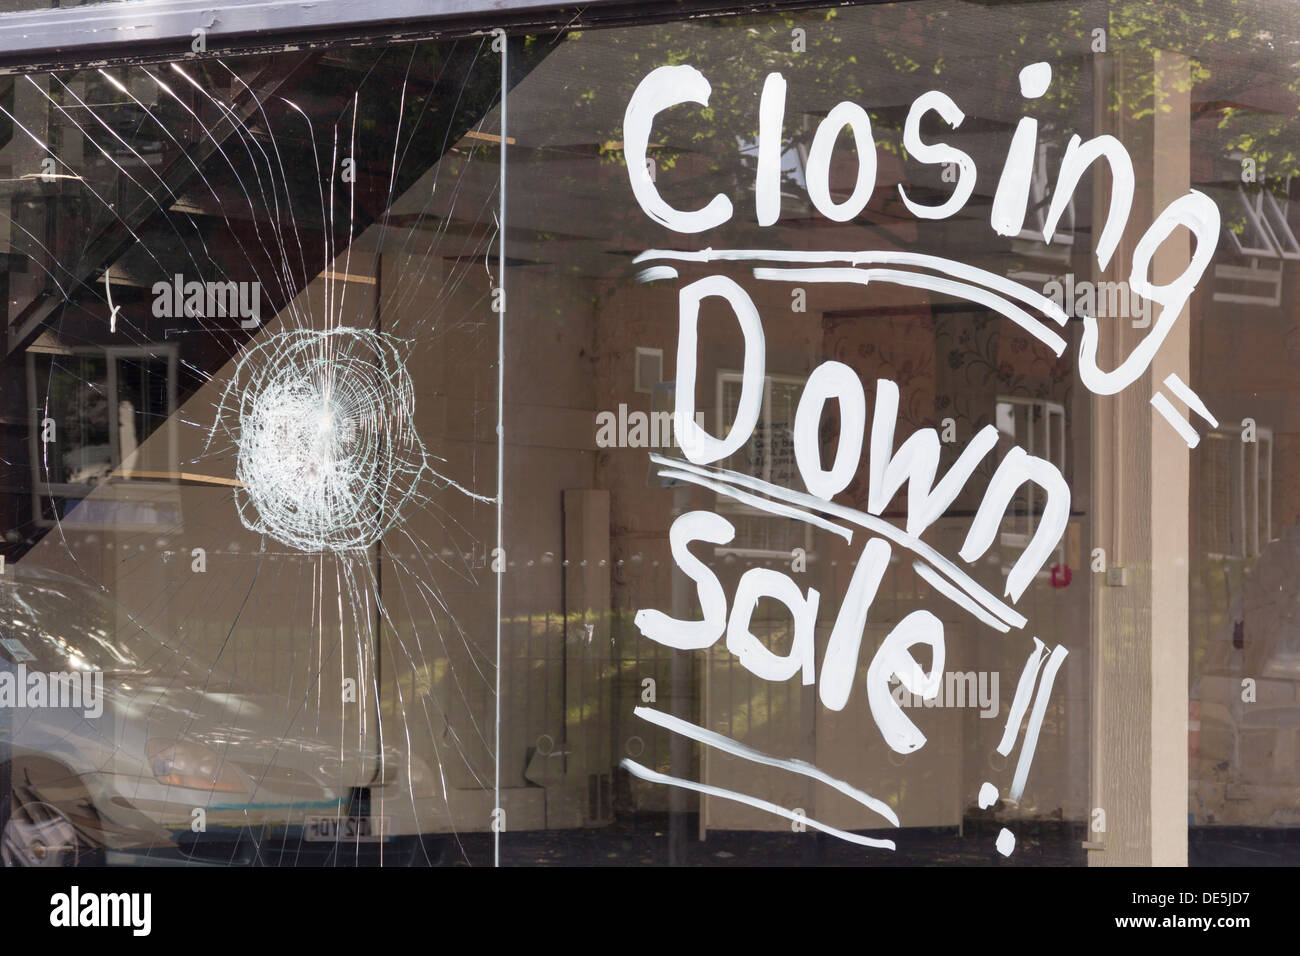 Closing down notice written in large white lettering on the shop window of an empty former furniture store showroom in Bolton. - Stock Image